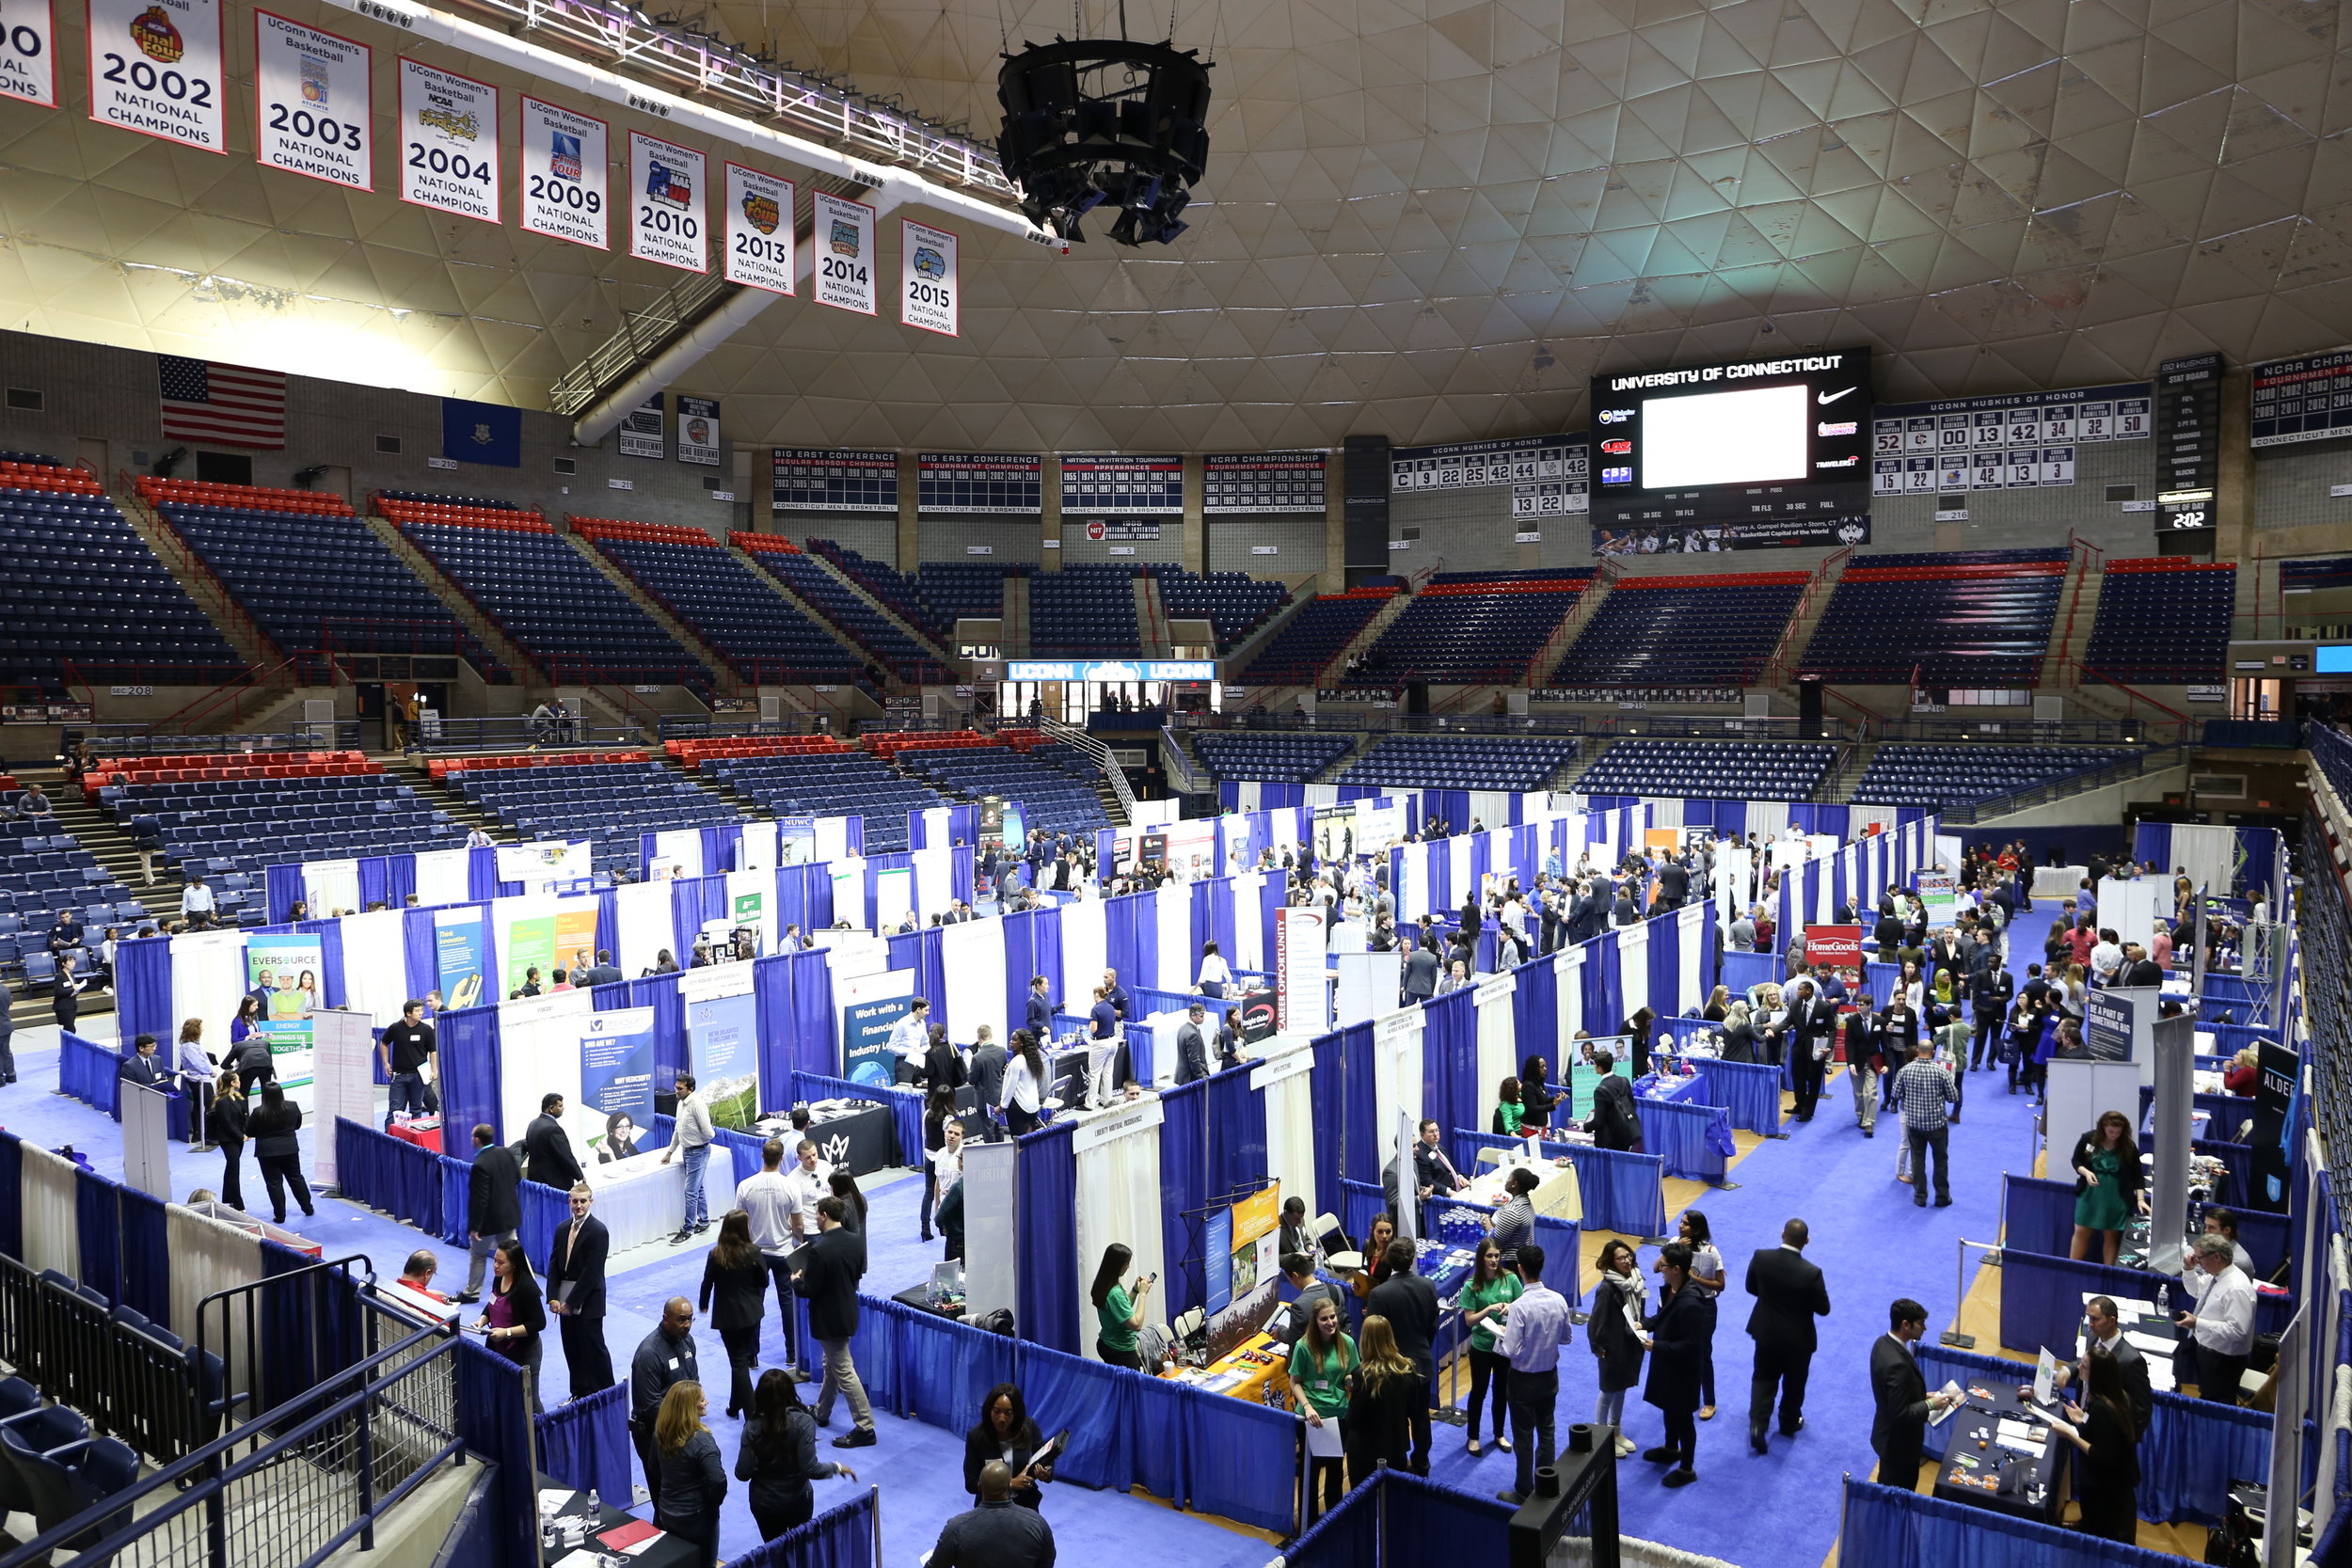 Students navigate UConn's spring career fair, put on by the Center for Career Development in Gampel Pavilion on Wednesday, March 30. Dozens of employers sent representatives to speak with students about full-time opportunities, internships, and more. (Jackson Haigis/The Daily Campus)